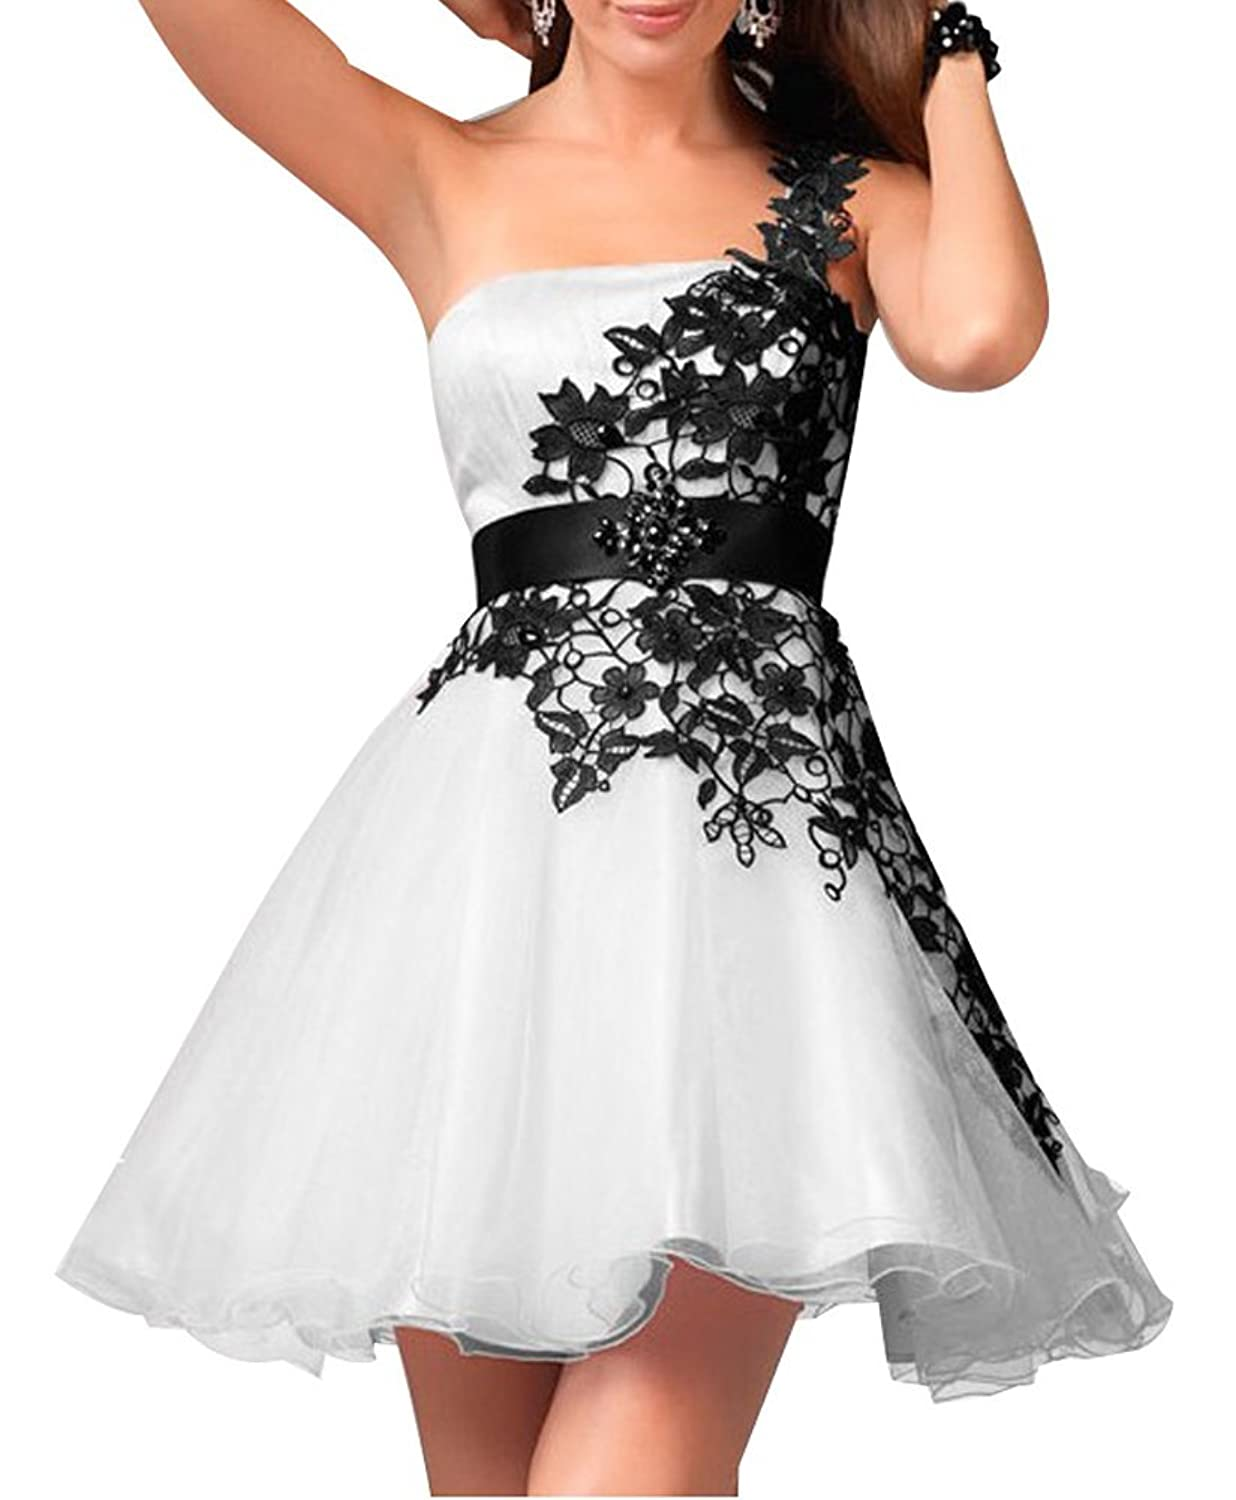 LISA.MOON Women's One Shoulder Backless Lace Applique Tulle Short Homecoming Gown